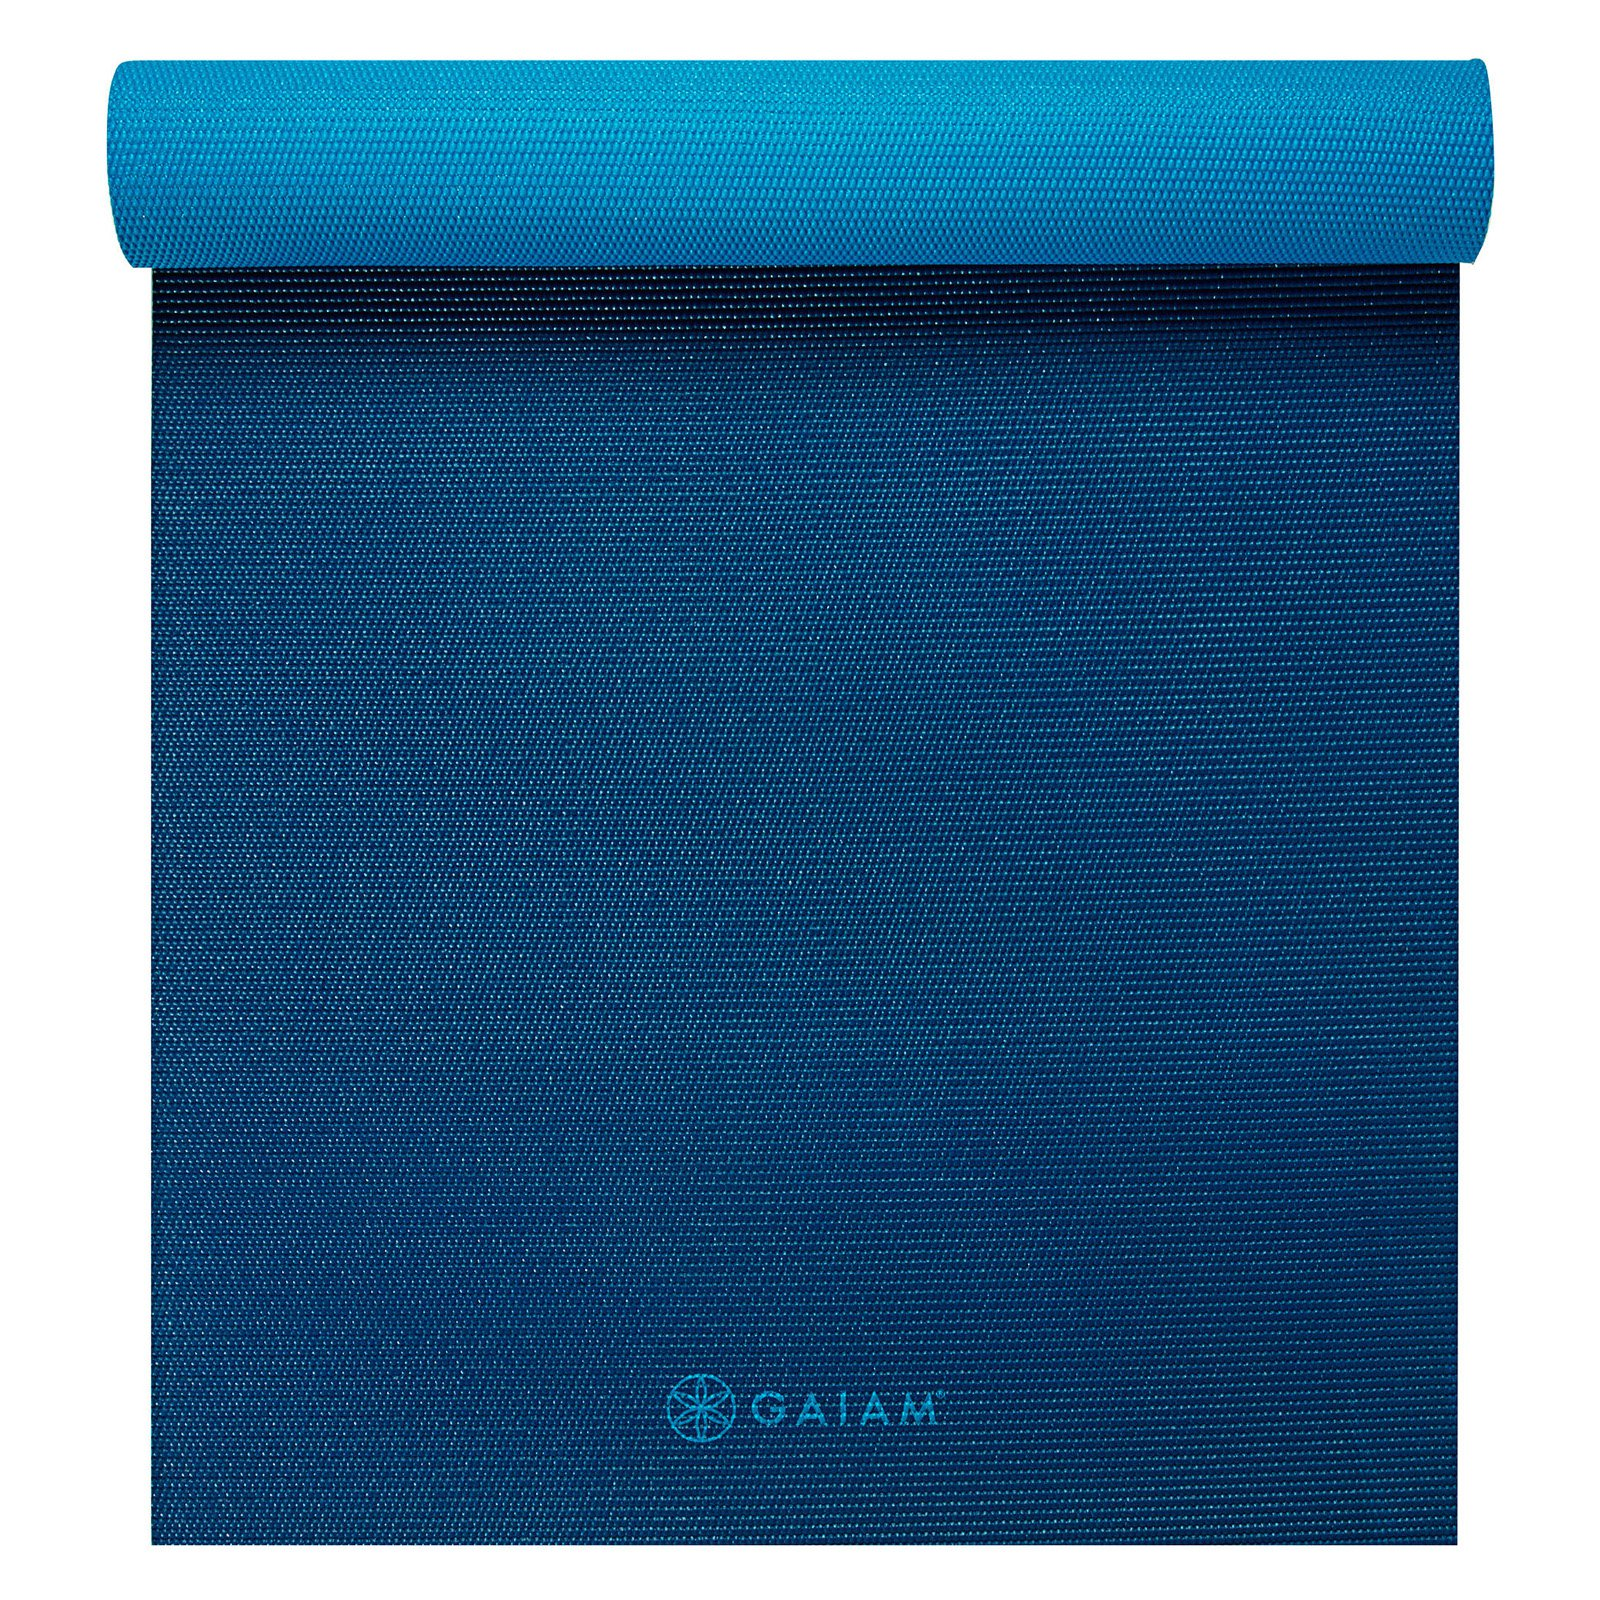 Gaiam Premium 2-Color Yoga Mat, Plum Jam, 5mm